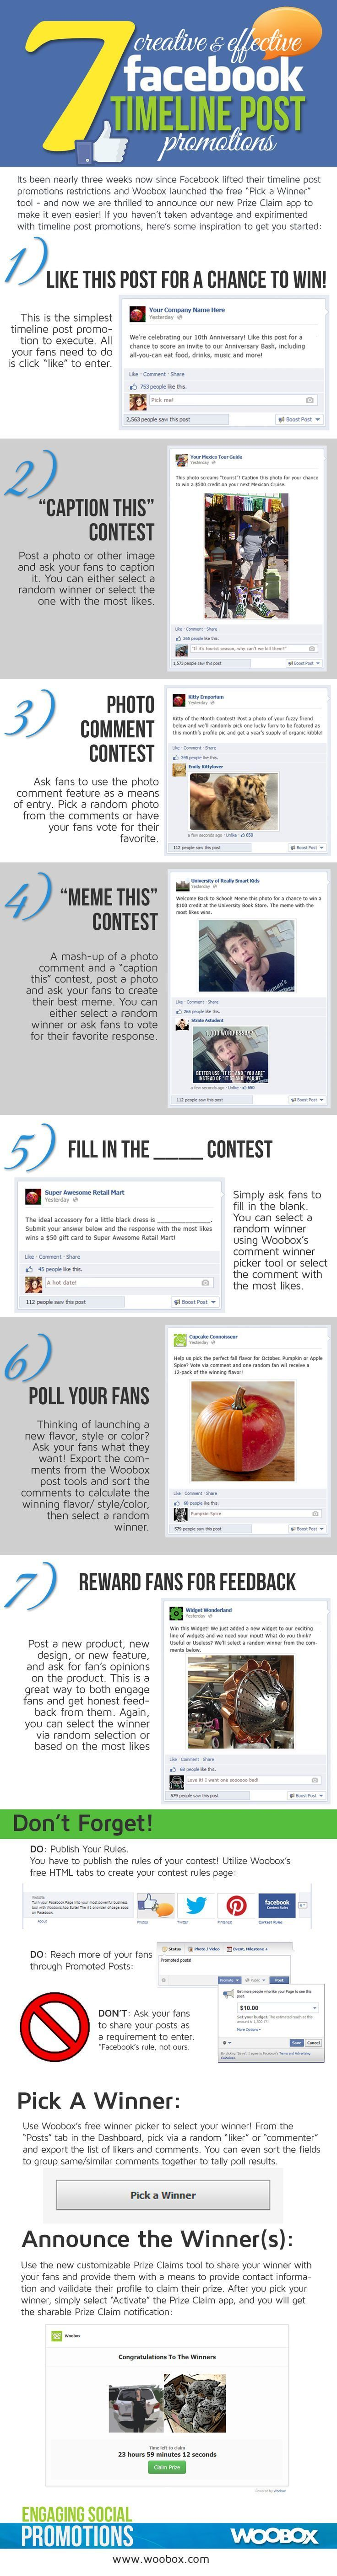 Social Media (http://www.riddsnetwork.in) -- 7 Creative & Effective #Facebook Timeline Post Promotions [INFOGRAPHIC] By www.riddsnetwork.in/contact (Indian SEO)